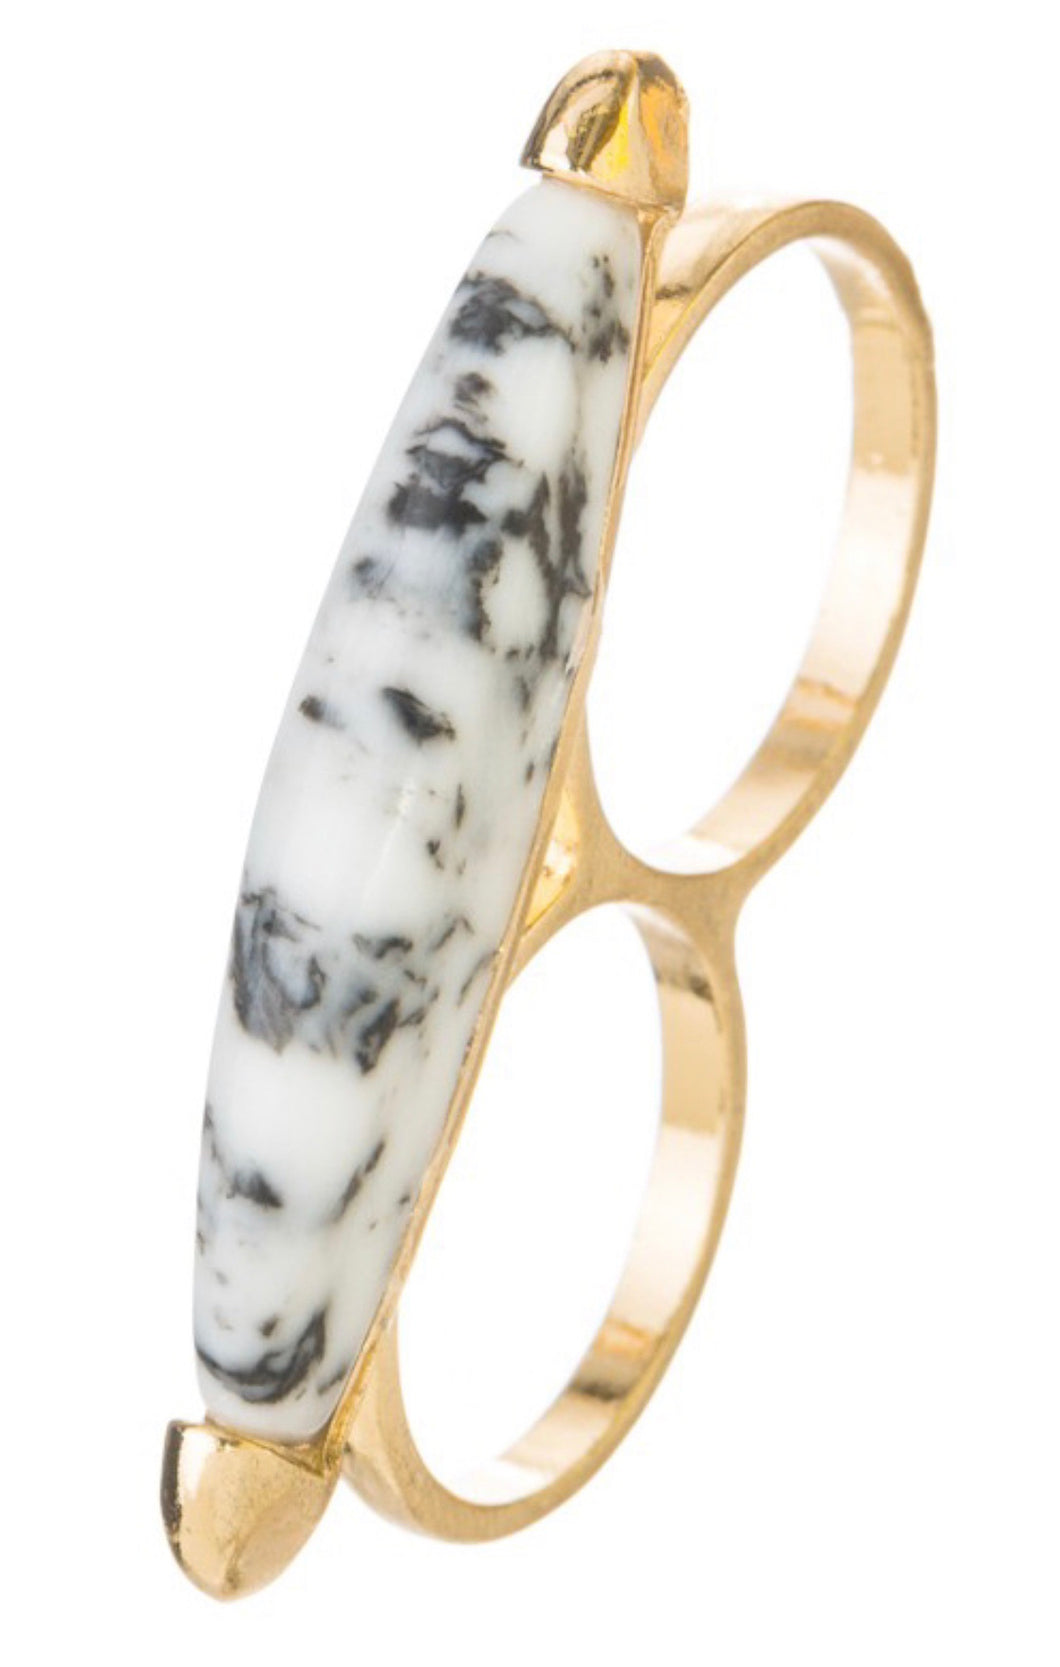 Black & White Marble Double Ring